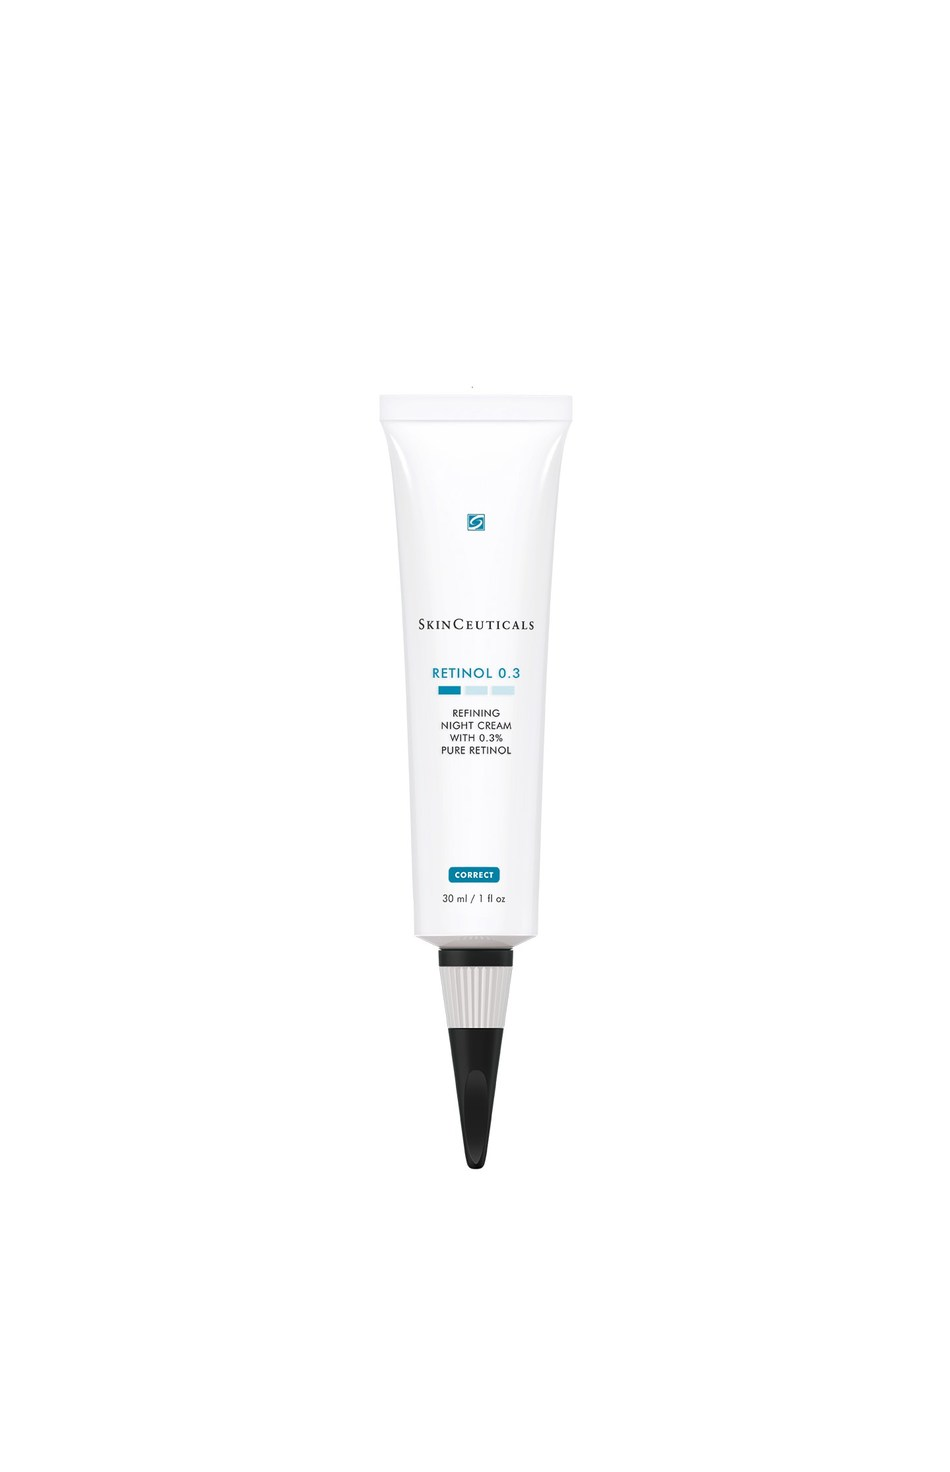 SkinCeuticals announces the launch of a new anti-aging retinol cream.